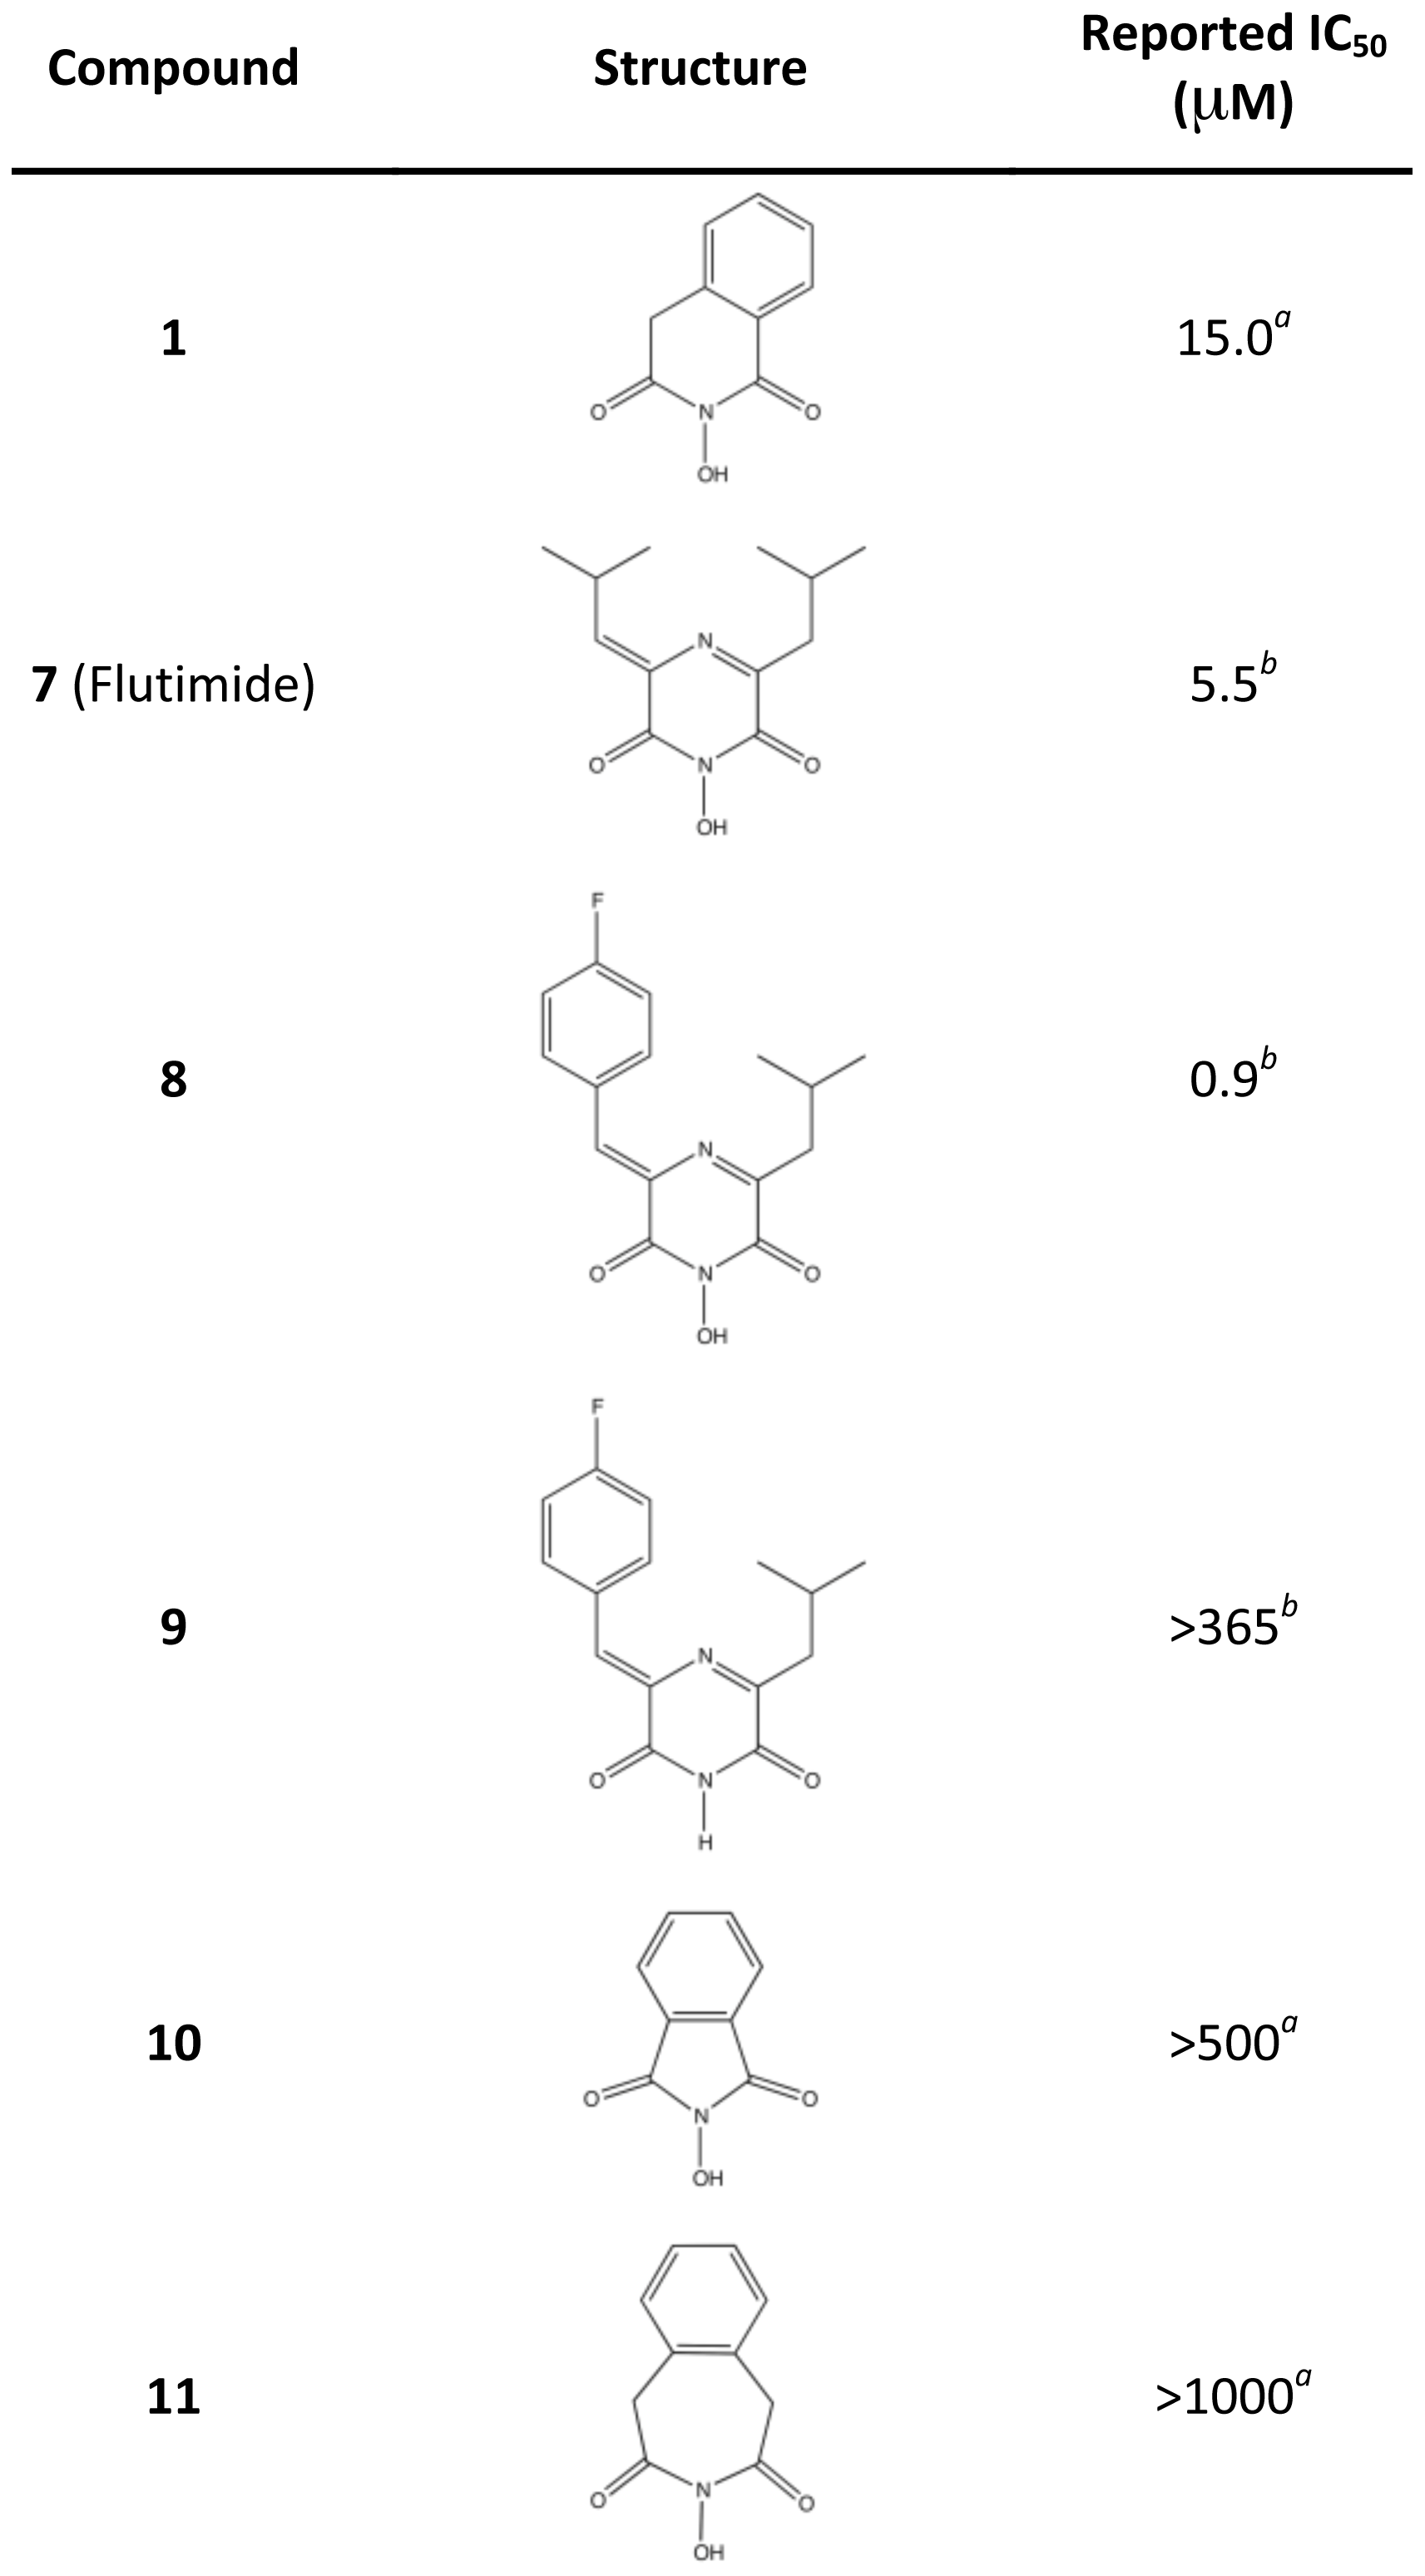 Reported IC<sub>50</sub> values of Flutimide, Flutimide-related, and <i>N</i>-hydroxyimide inhibitors determined in an <i>in vitro</i> transcription assay with influenza A polymerase.